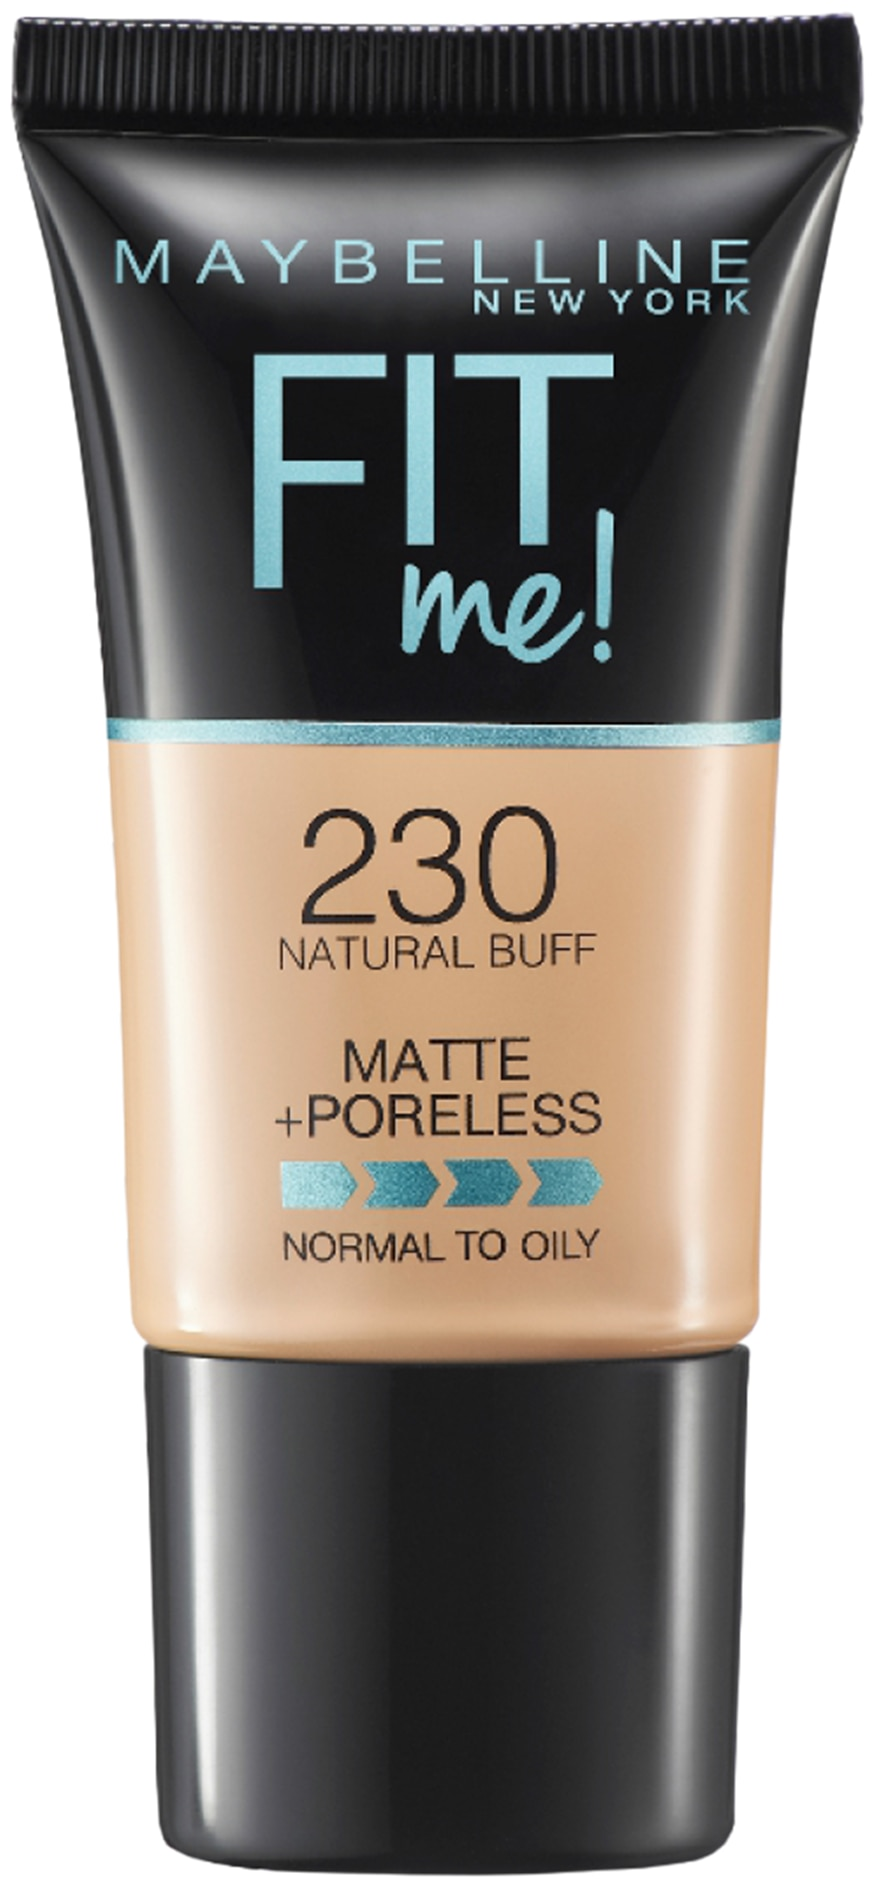 Maybelline New York Fit Me Matte+Poreless Liquid Foundation Tube;230 Natural Buff 18gm